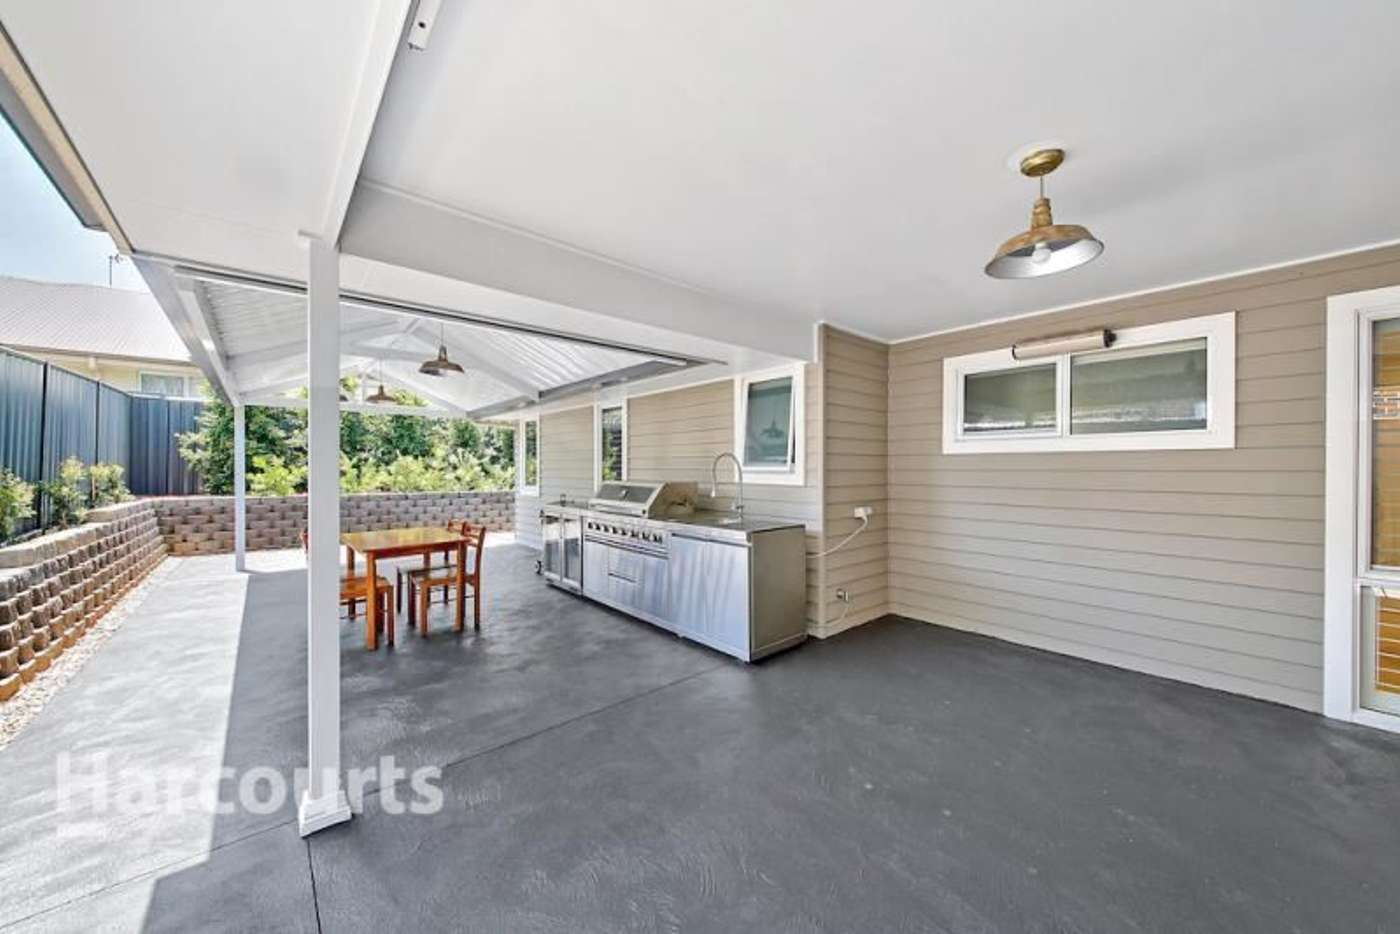 Sixth view of Homely house listing, 38 OLIVE HILL DRIVE, Cobbitty NSW 2570